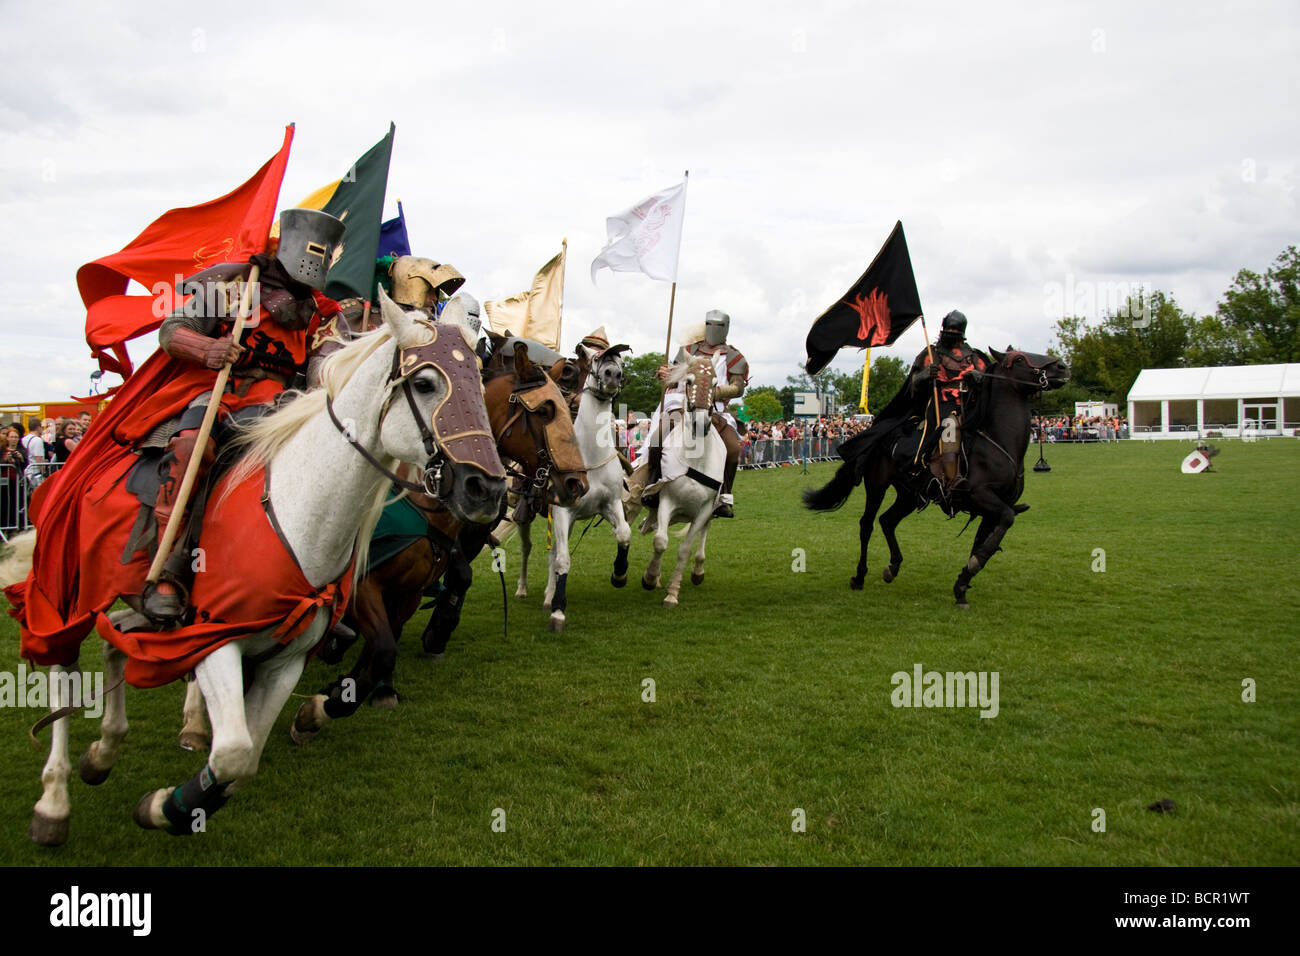 http://c8.alamy.com/comp/BCR1WT/medieval-knights-on-galloping-horses-carrying-standards-or-flags-lambeth-BCR1WT.jpg